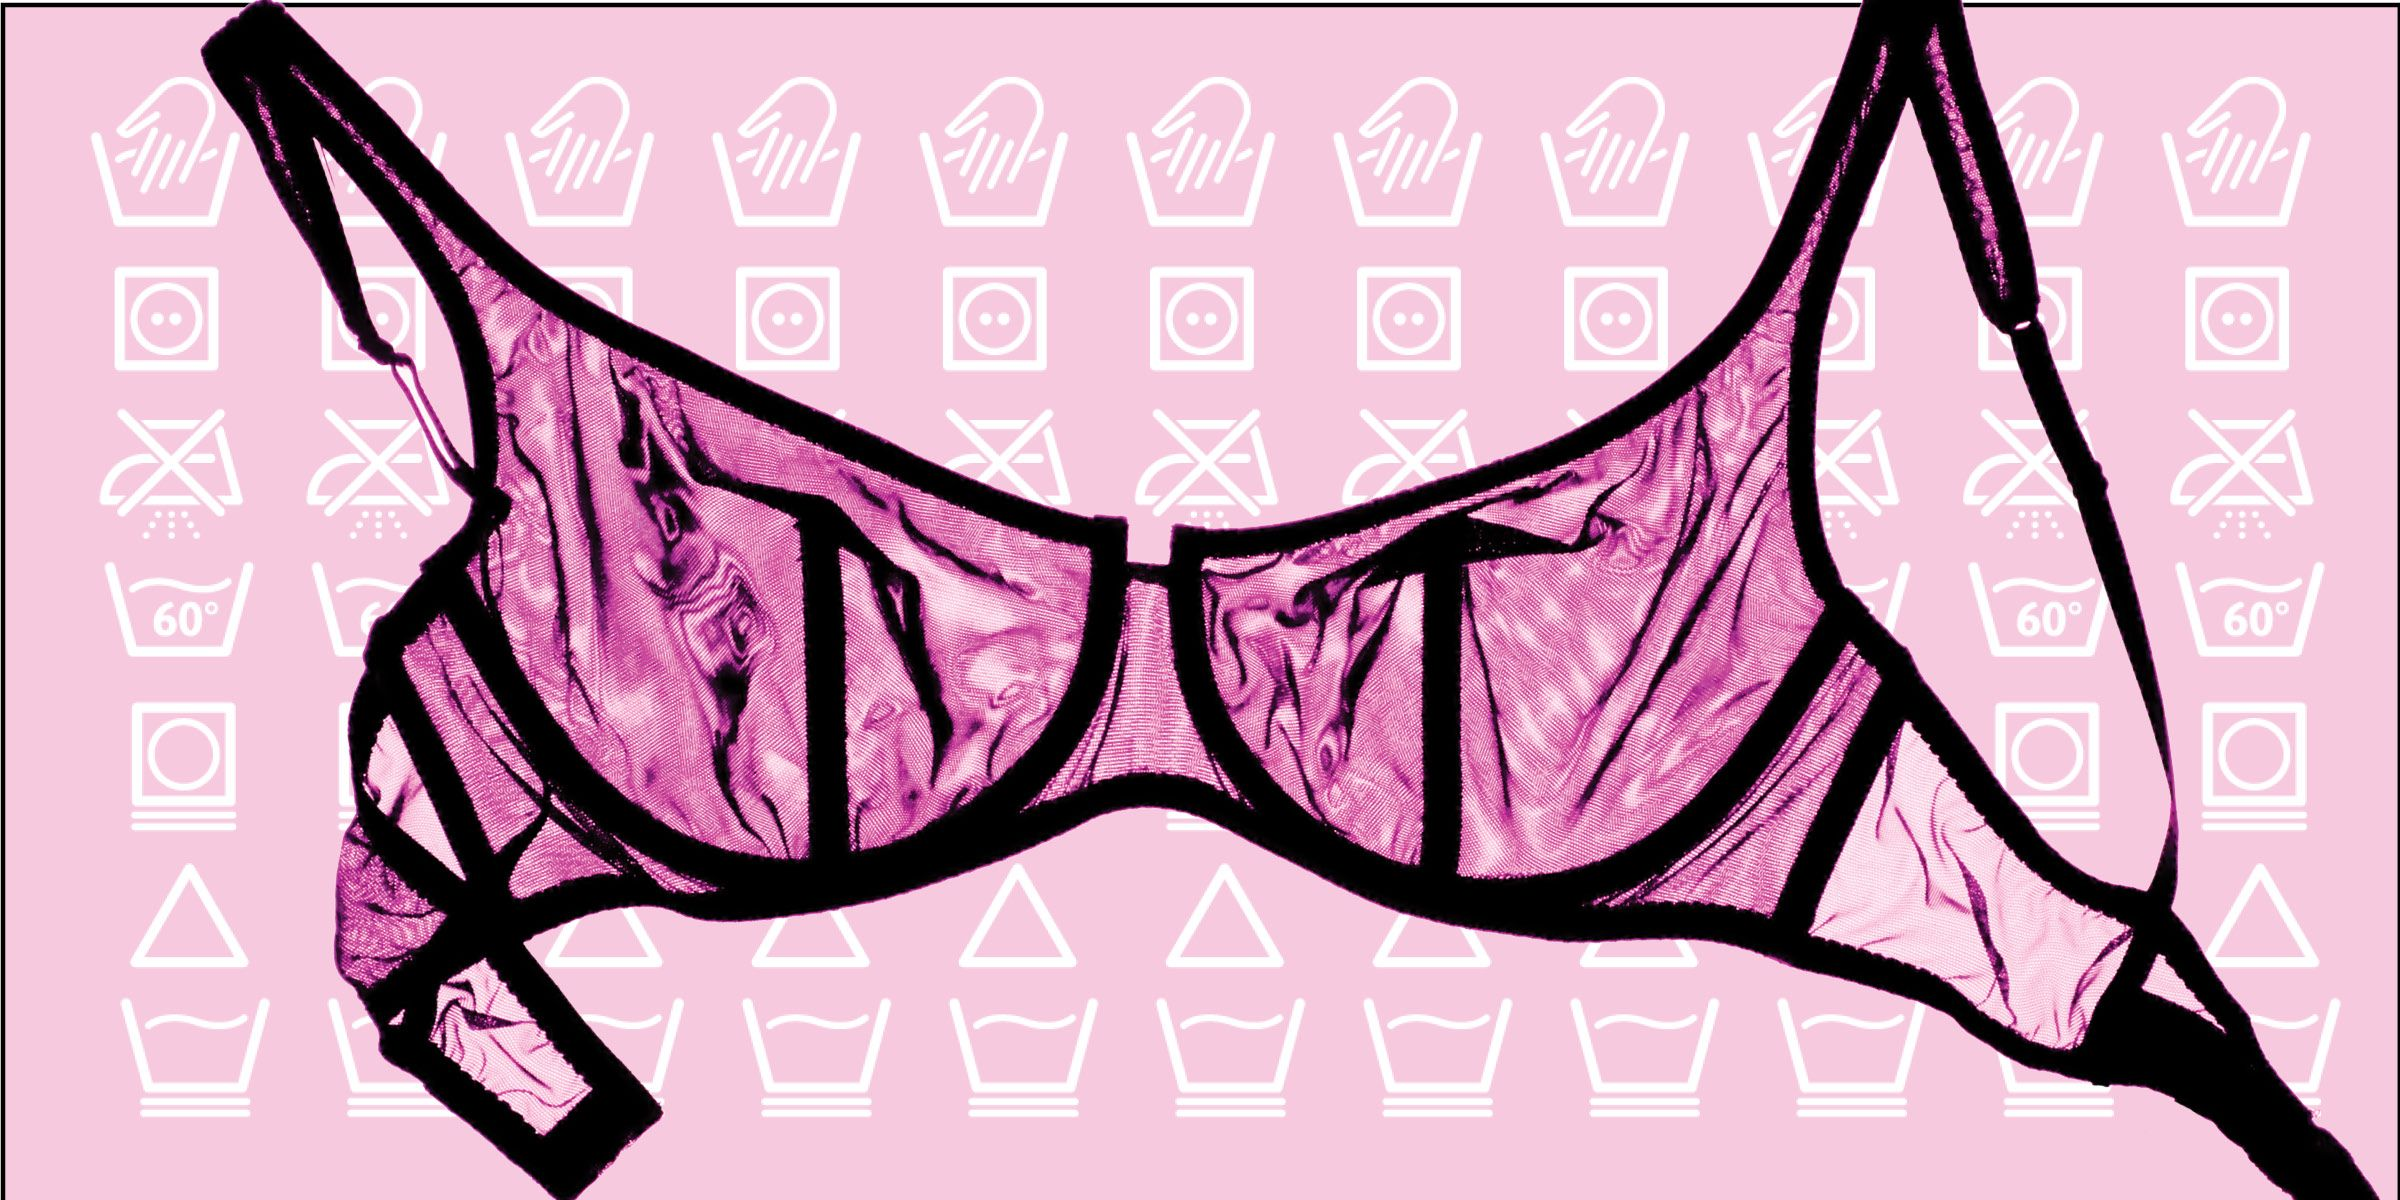 6 Ways to Machine-Wash Your Bras Without Ruining Them